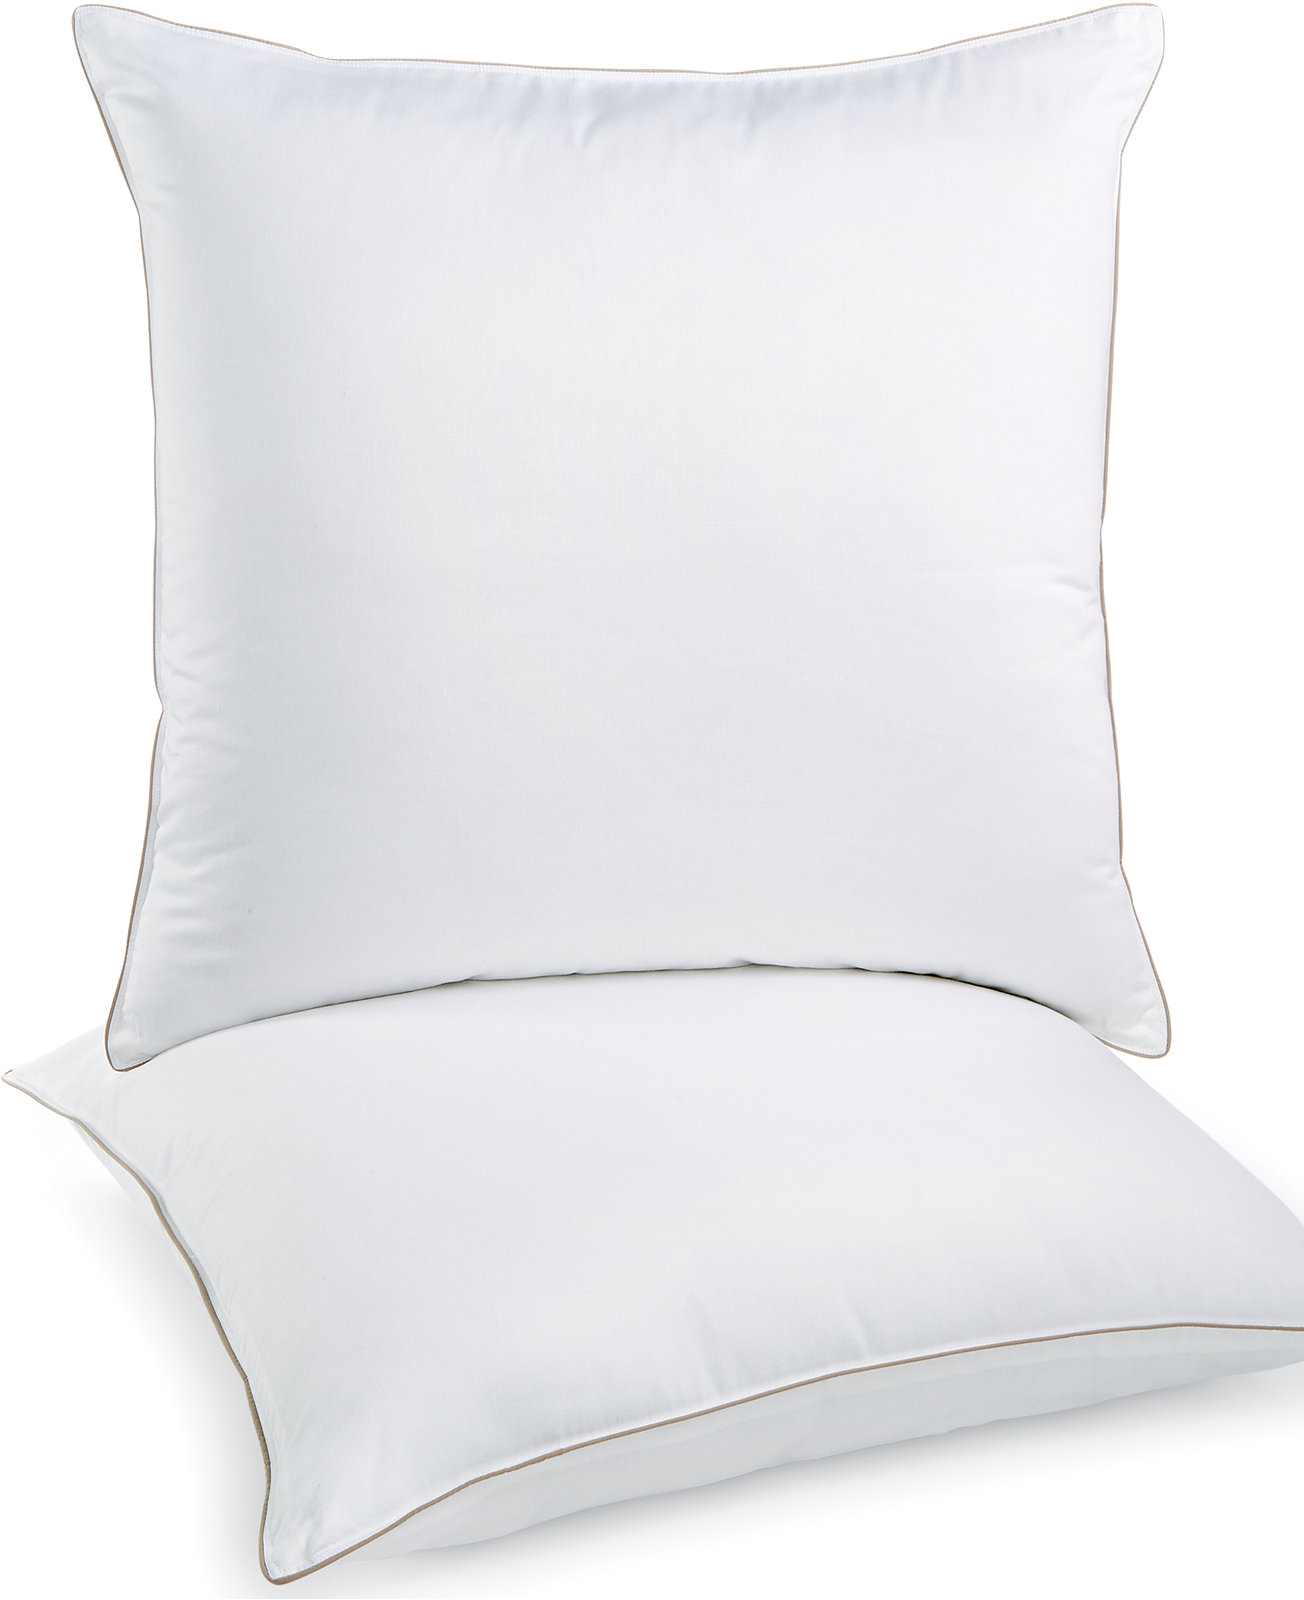 Martha Stewart Collection Allergy Wise 2 Pack Euro Pillows - Pillows - Bed & Bath - Macy's Bridal and Wedding Registry